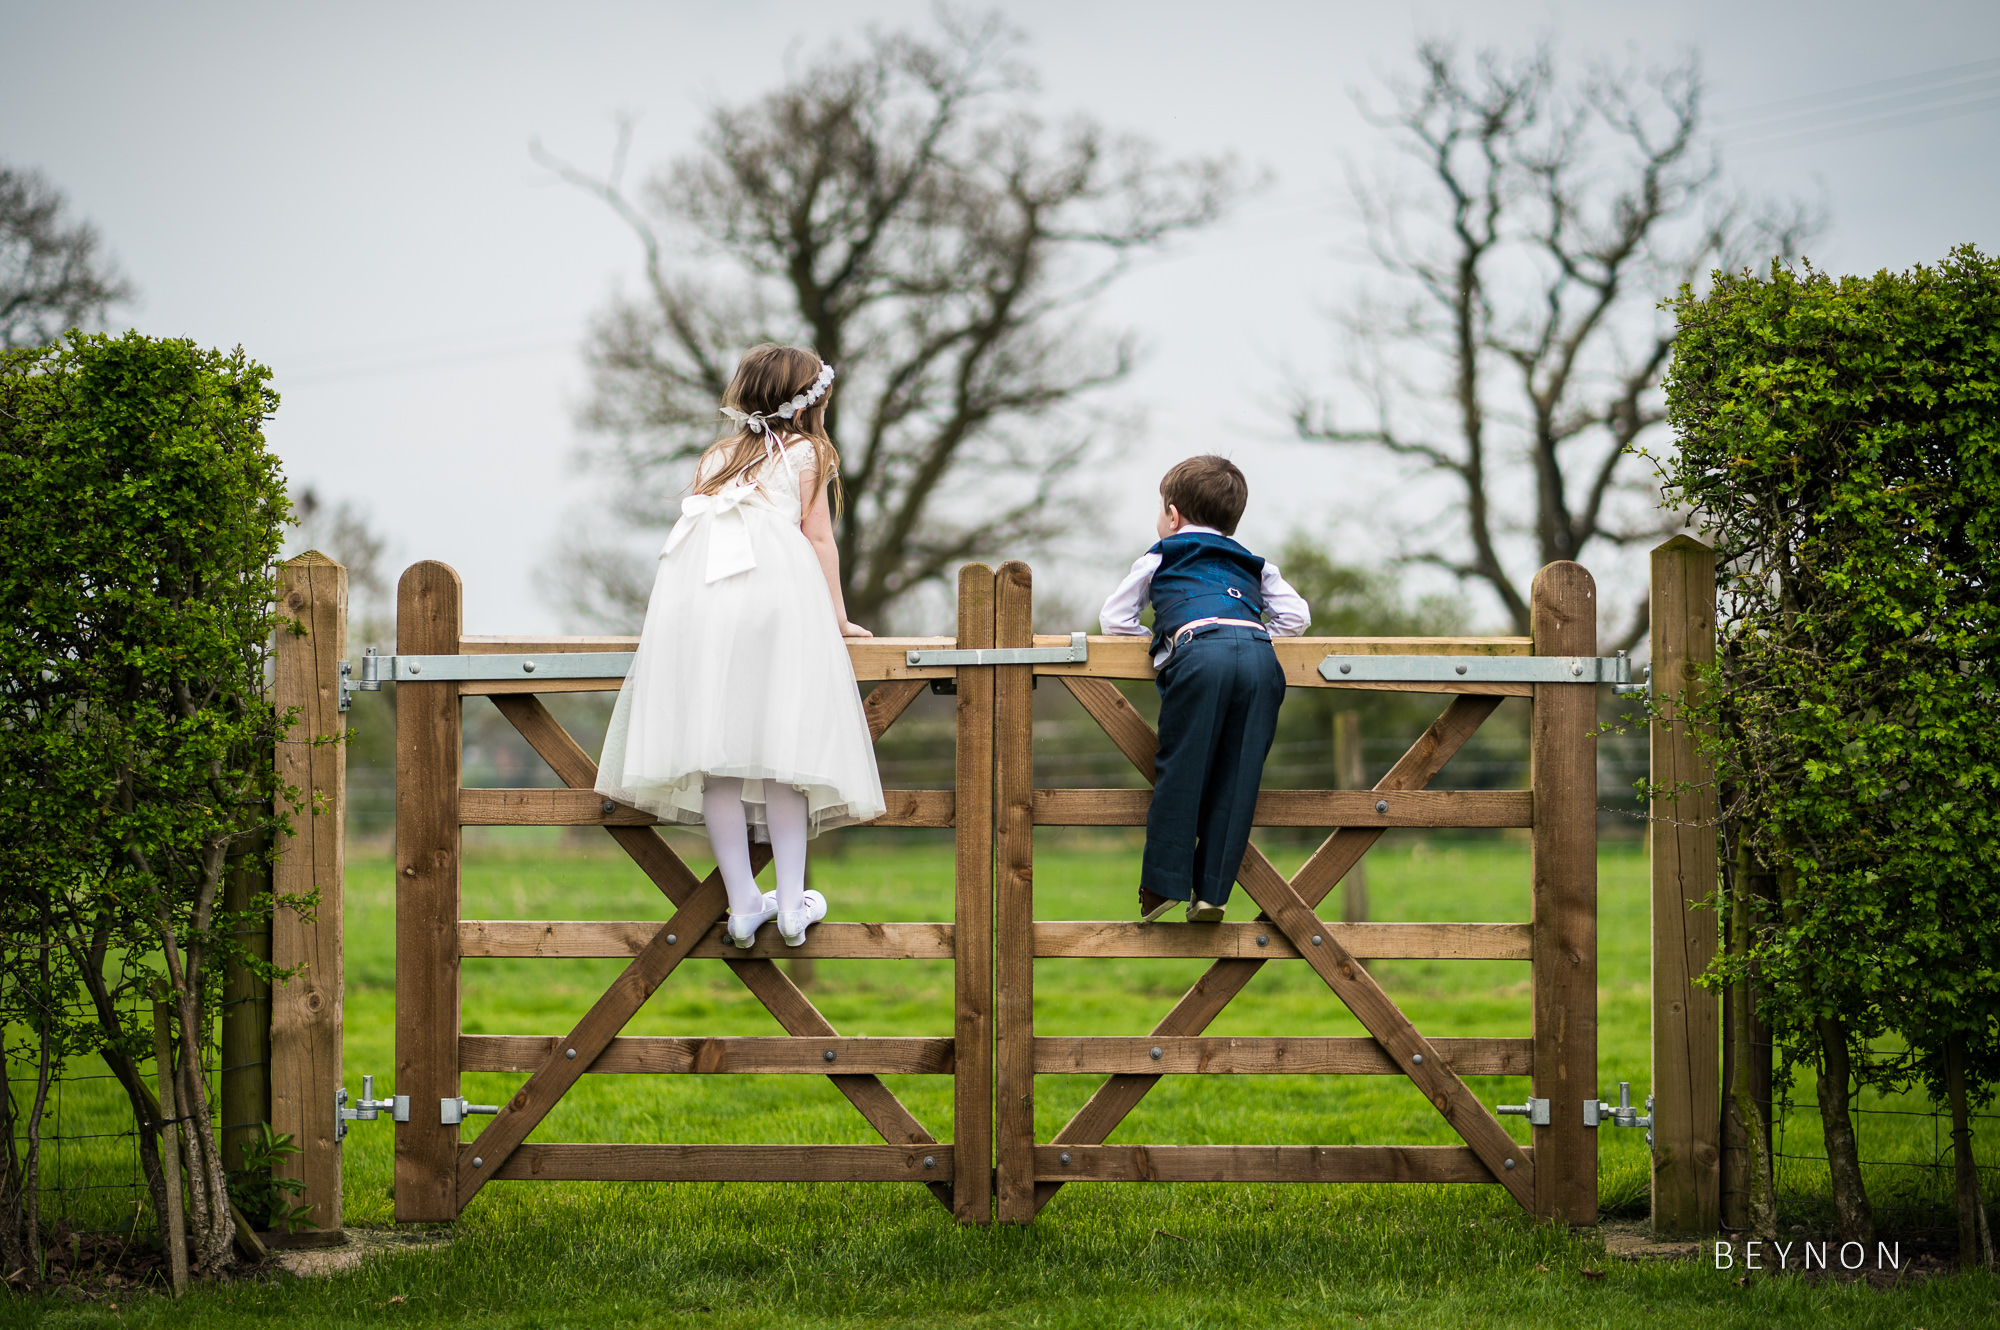 Two children stand on gate